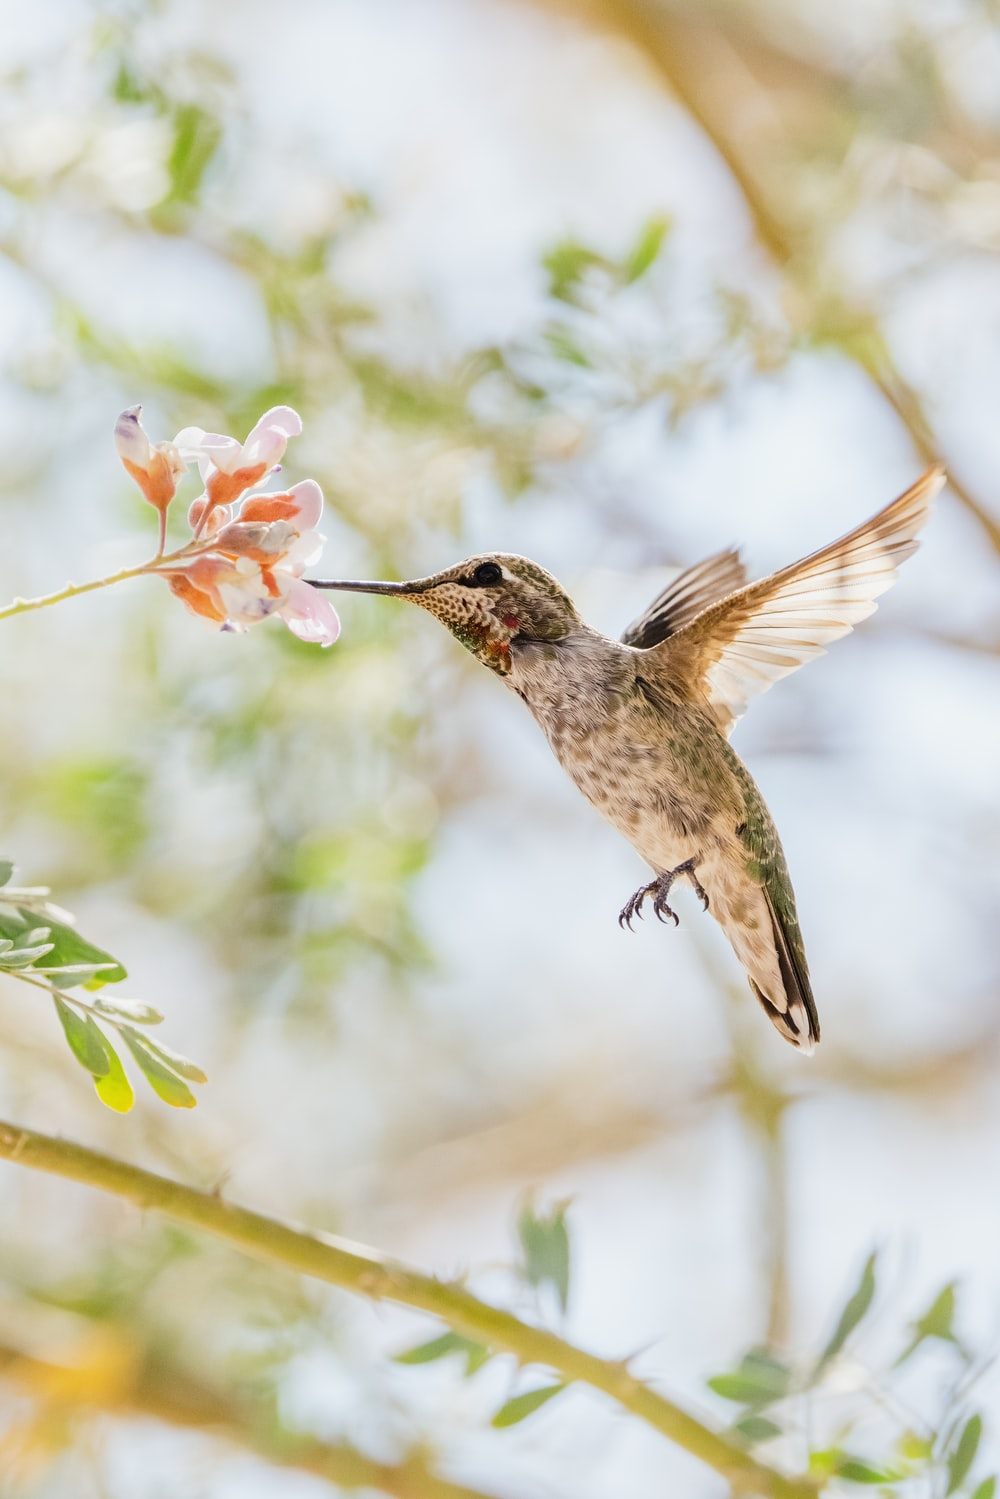 brown humming bird flying in the air